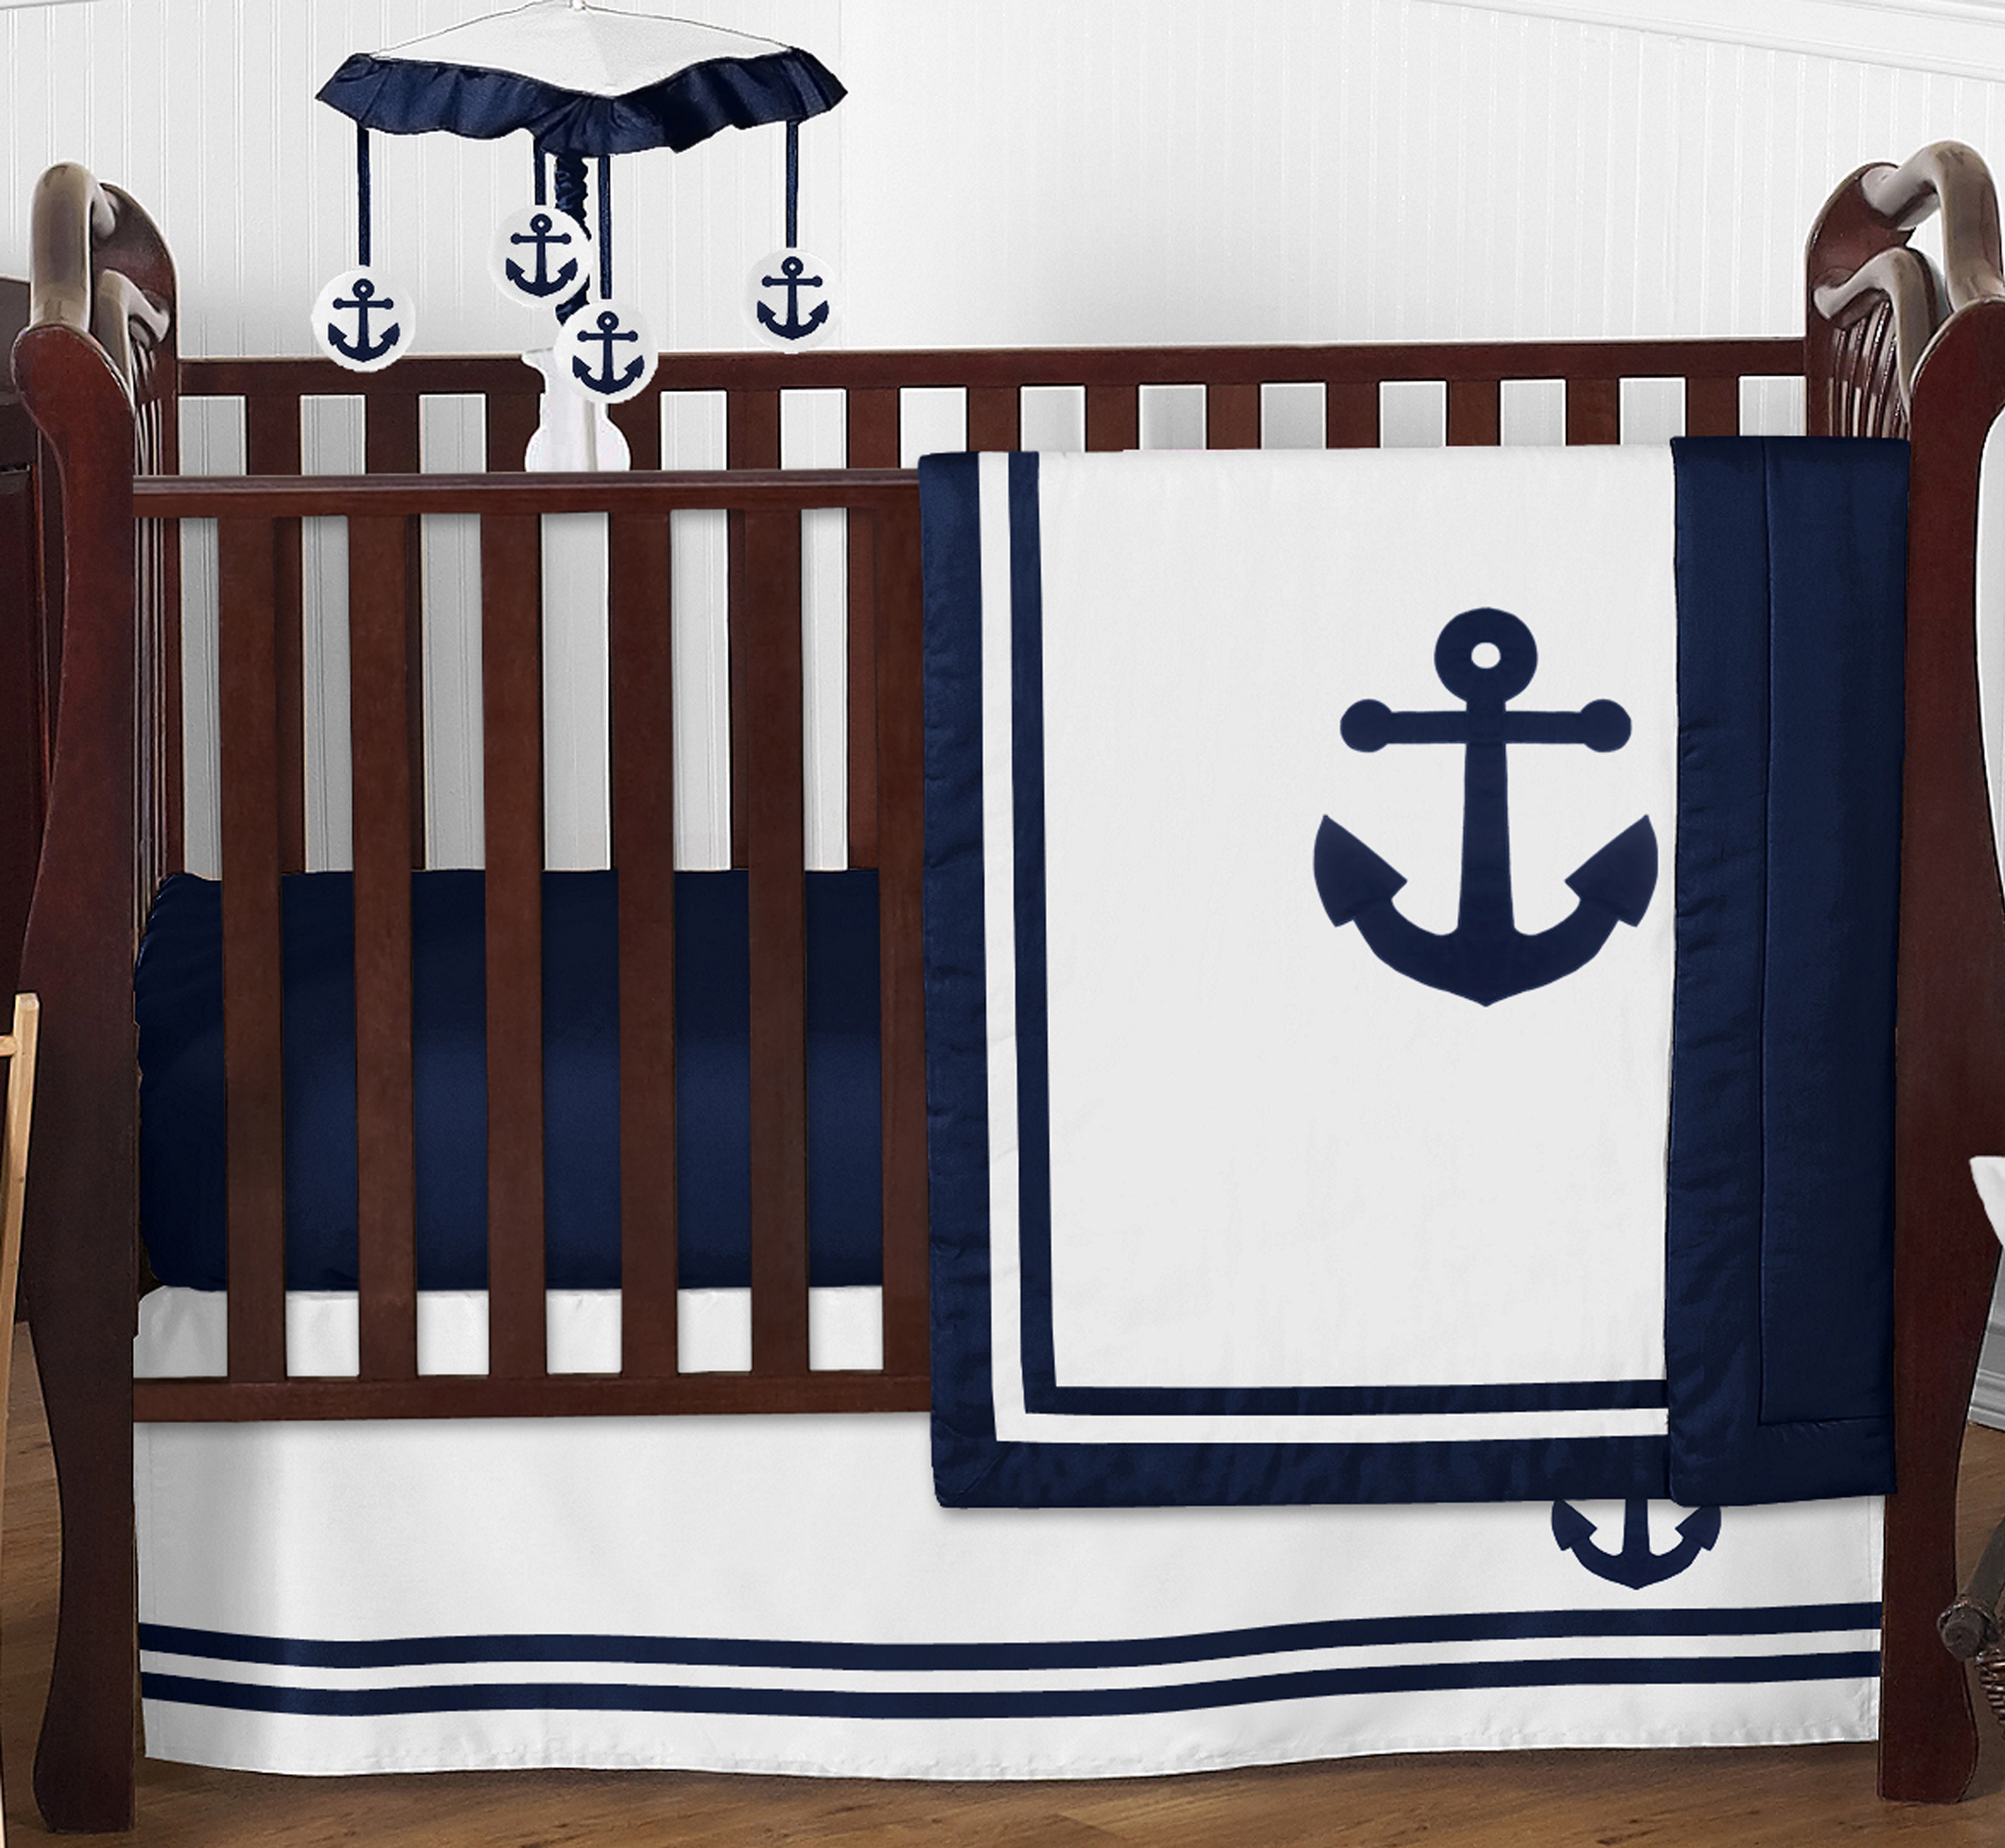 Nautical Infant Bedding: Sweet Jojo Navy Blue Nautical Boat Anchor Bumperless Baby